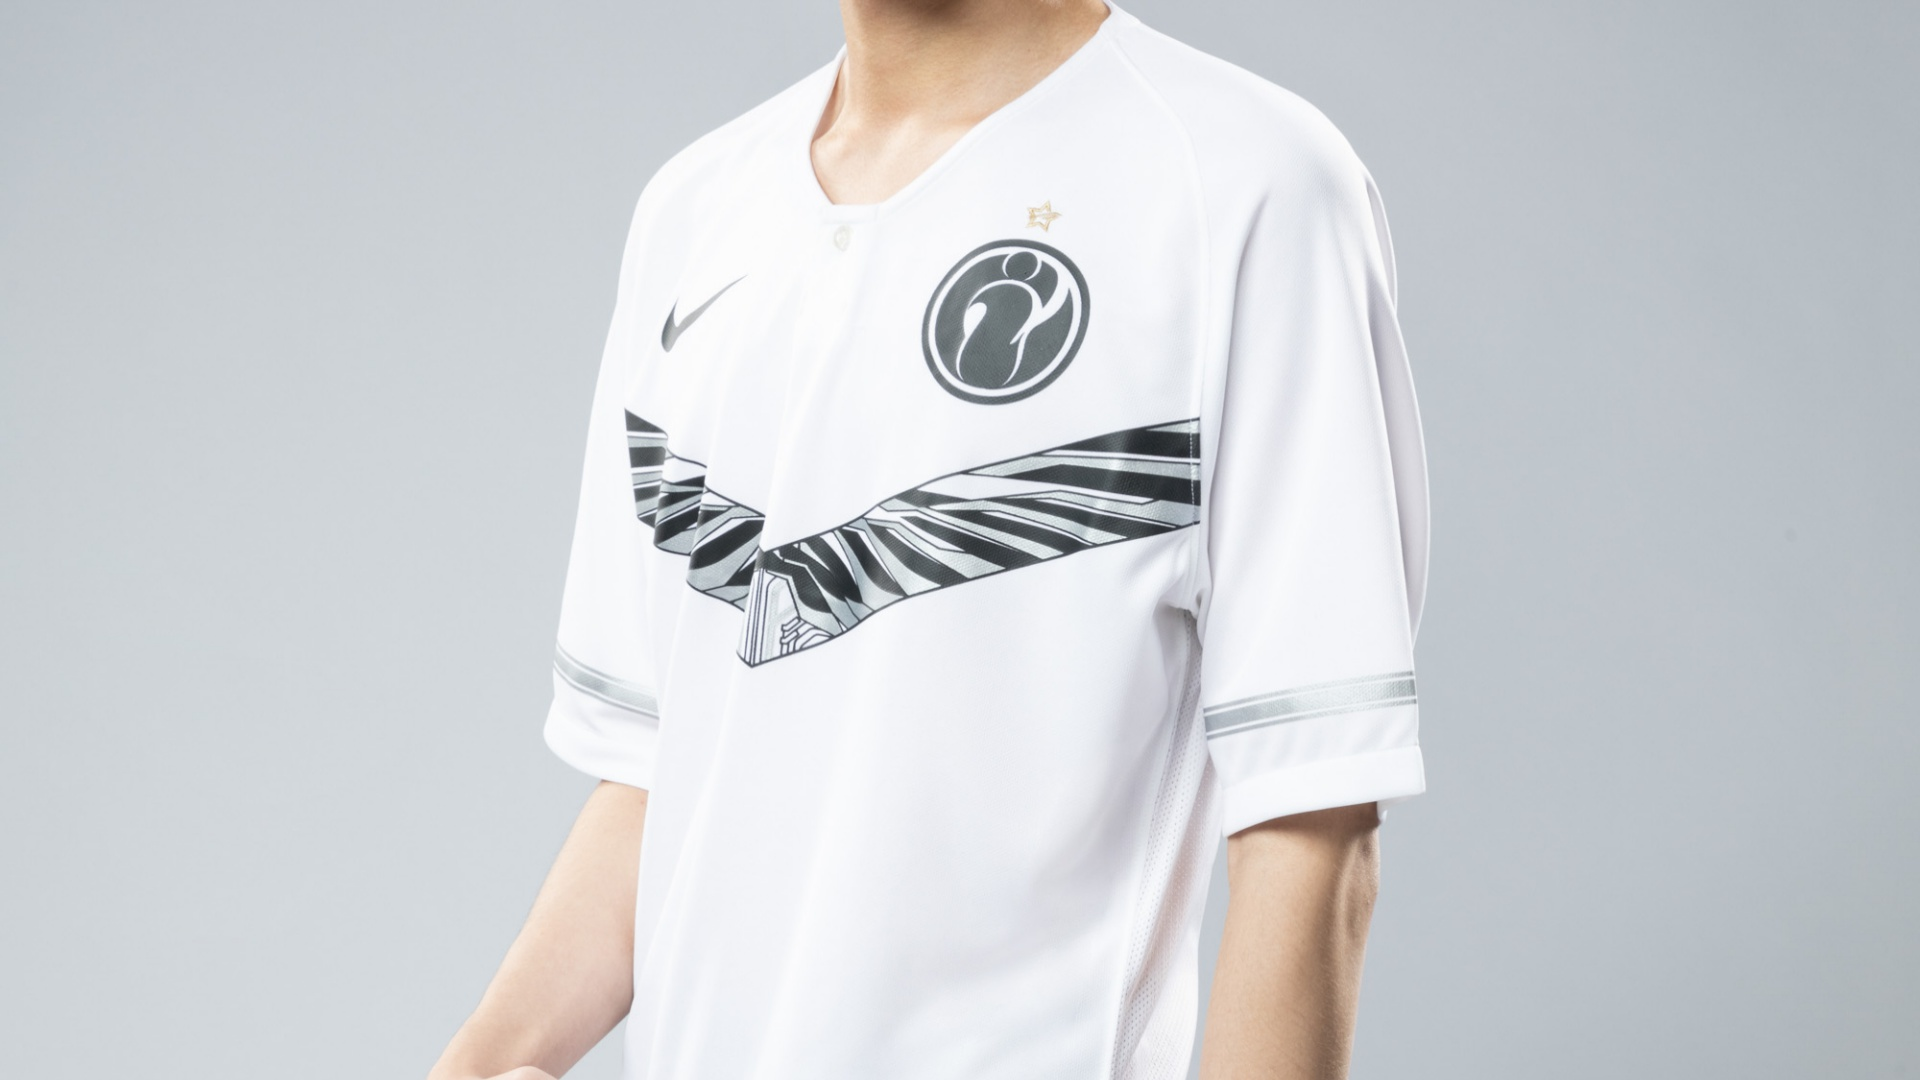 online store 880f9 3927e Nike made some jerseys for League of Legends Pro players in ...